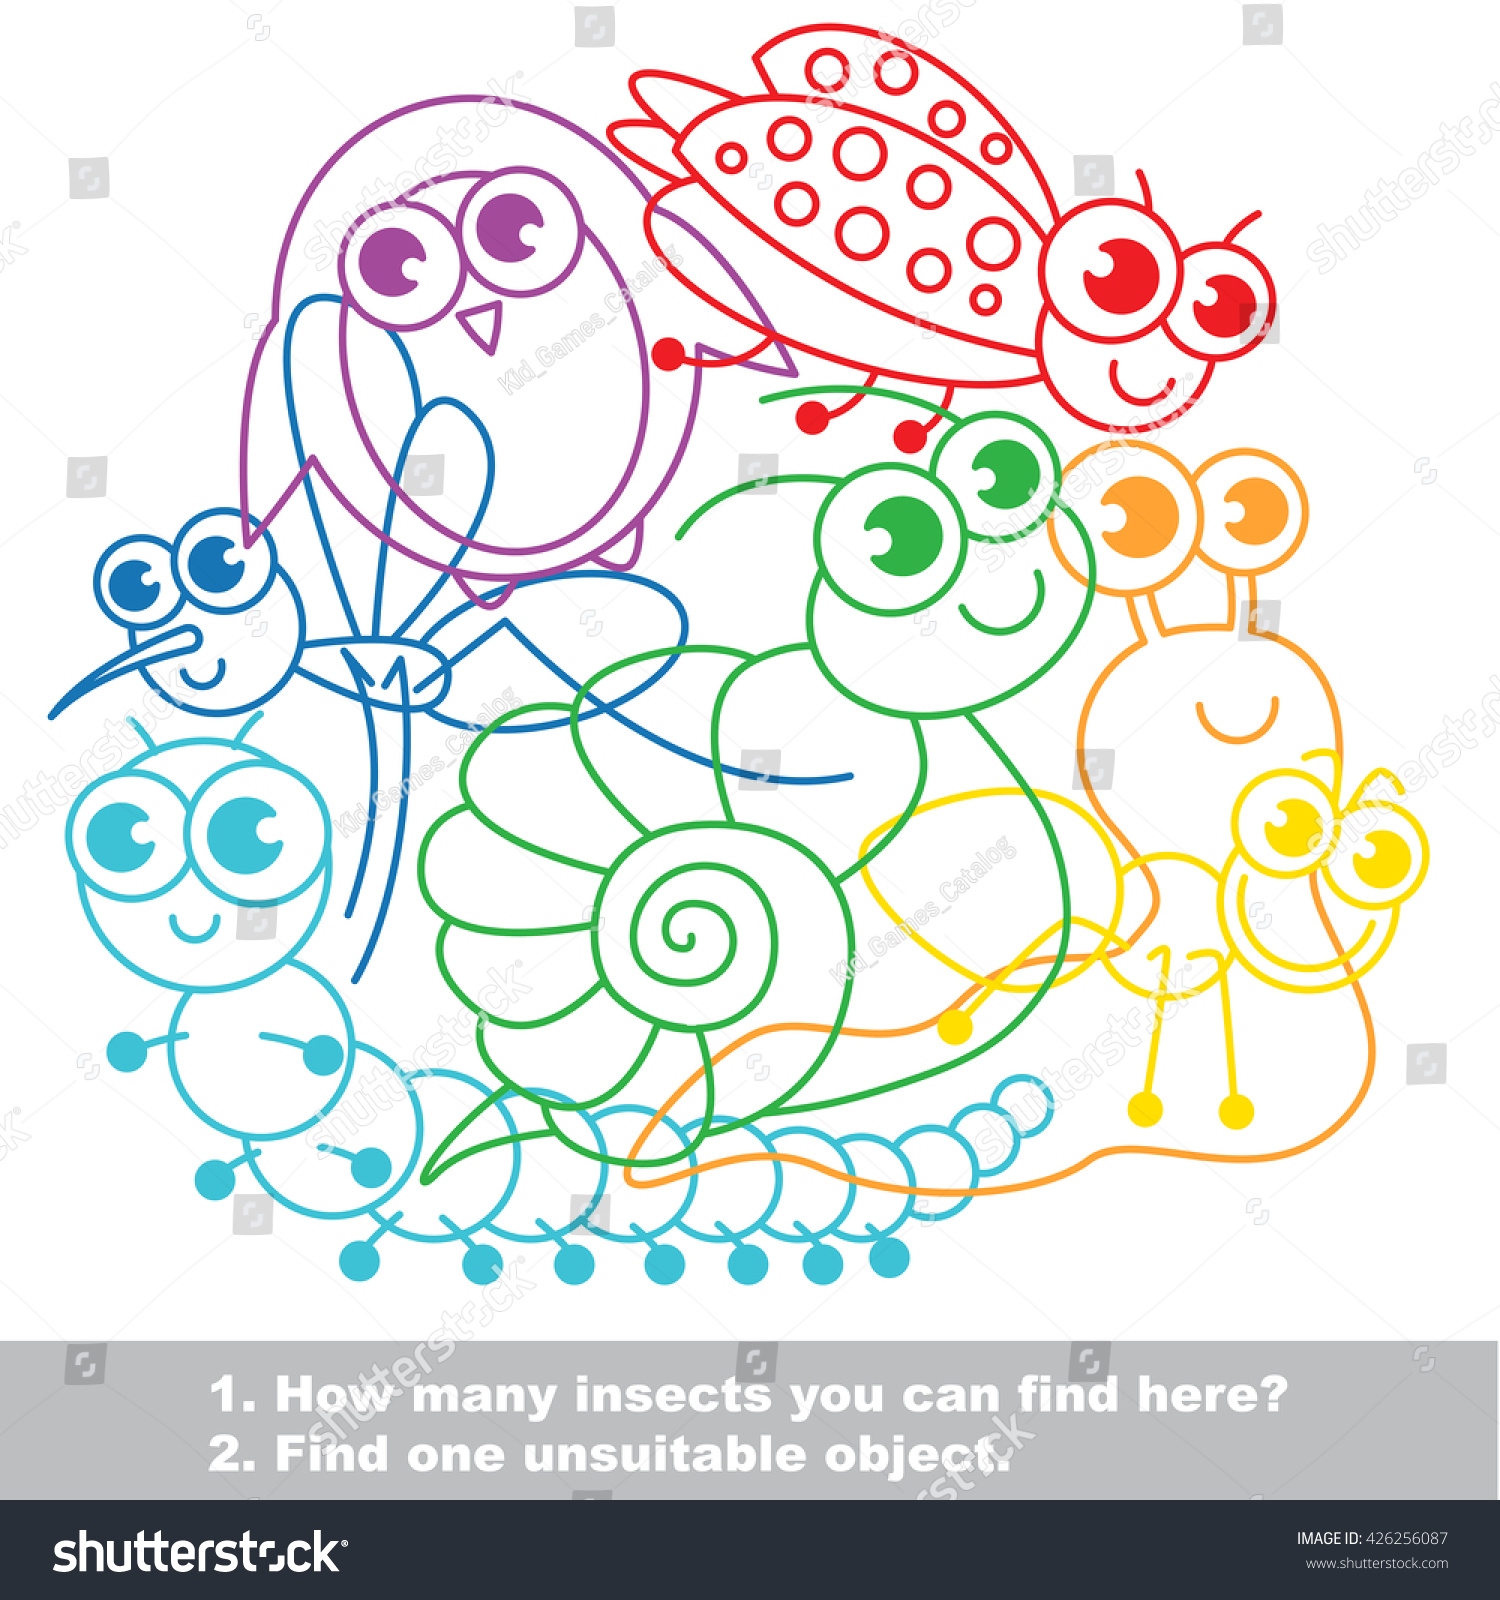 Cute Small Insects Simple Mishmash Colorful Stock Vector (2018 ...